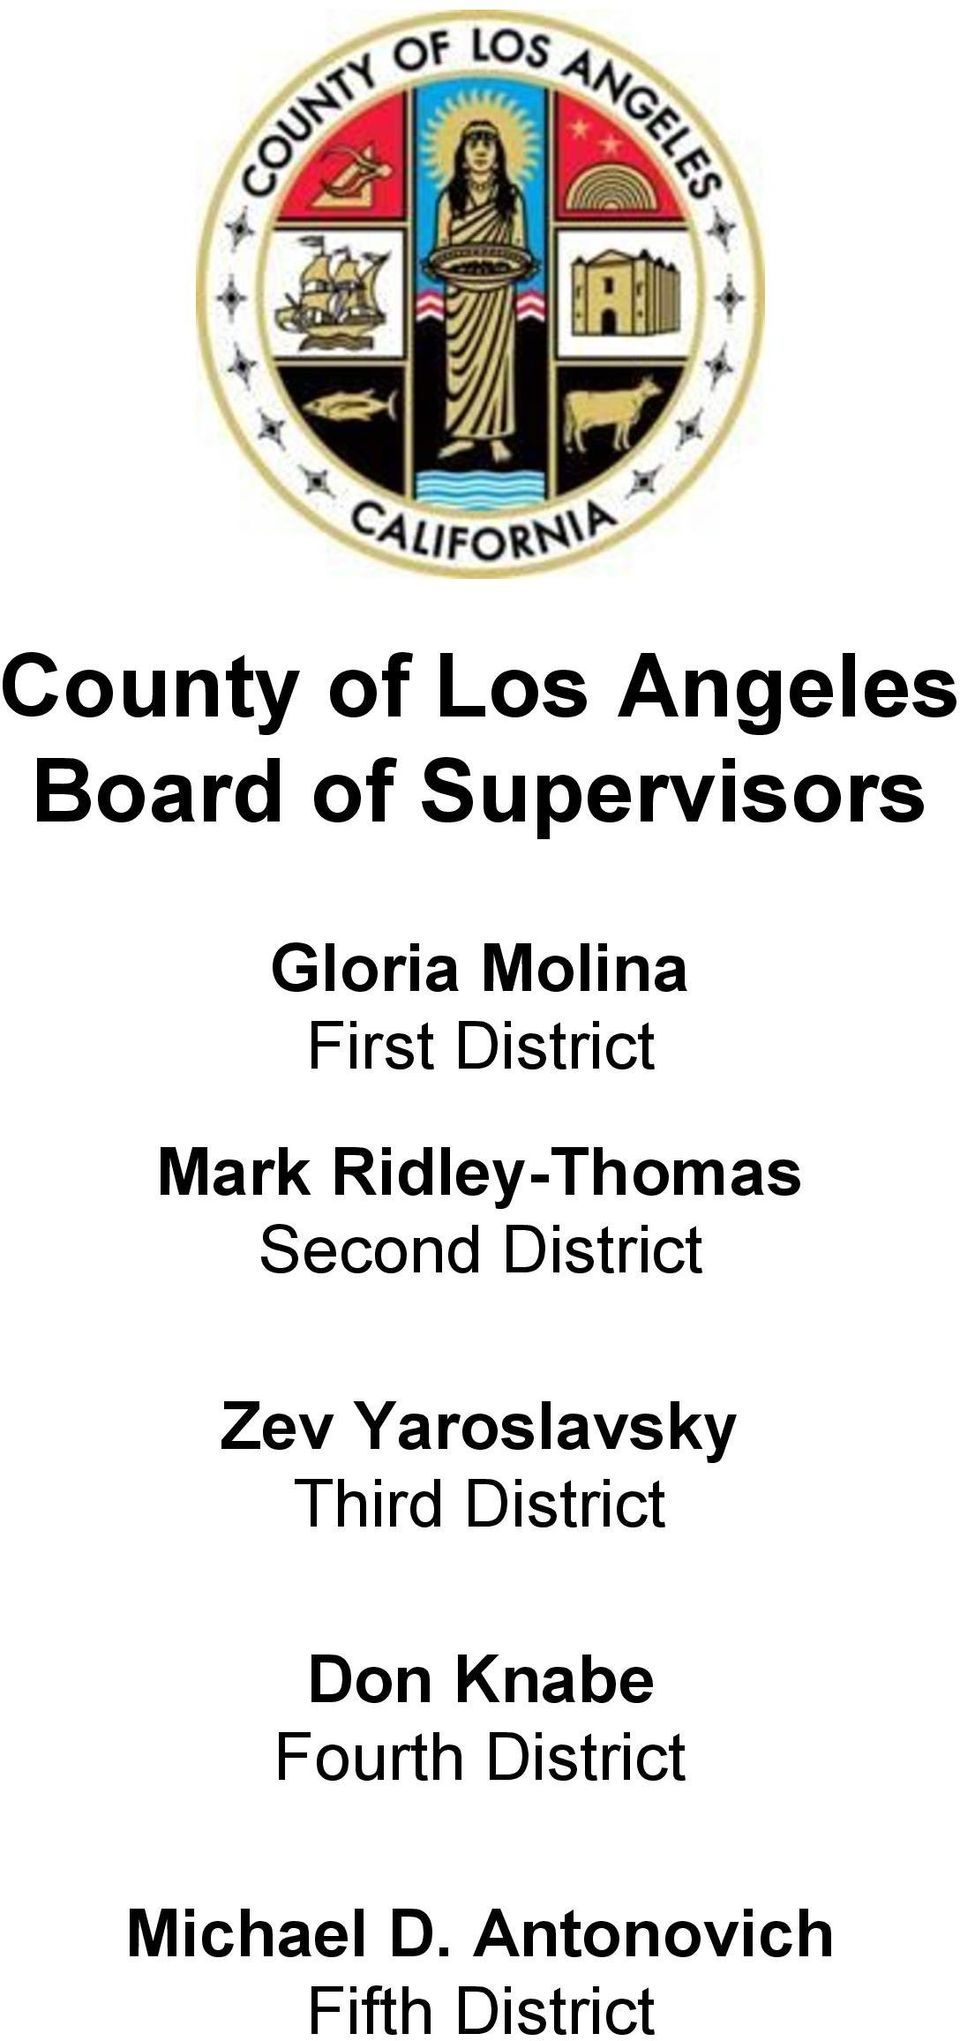 District Zev Yaroslavsky Third District Don Knabe